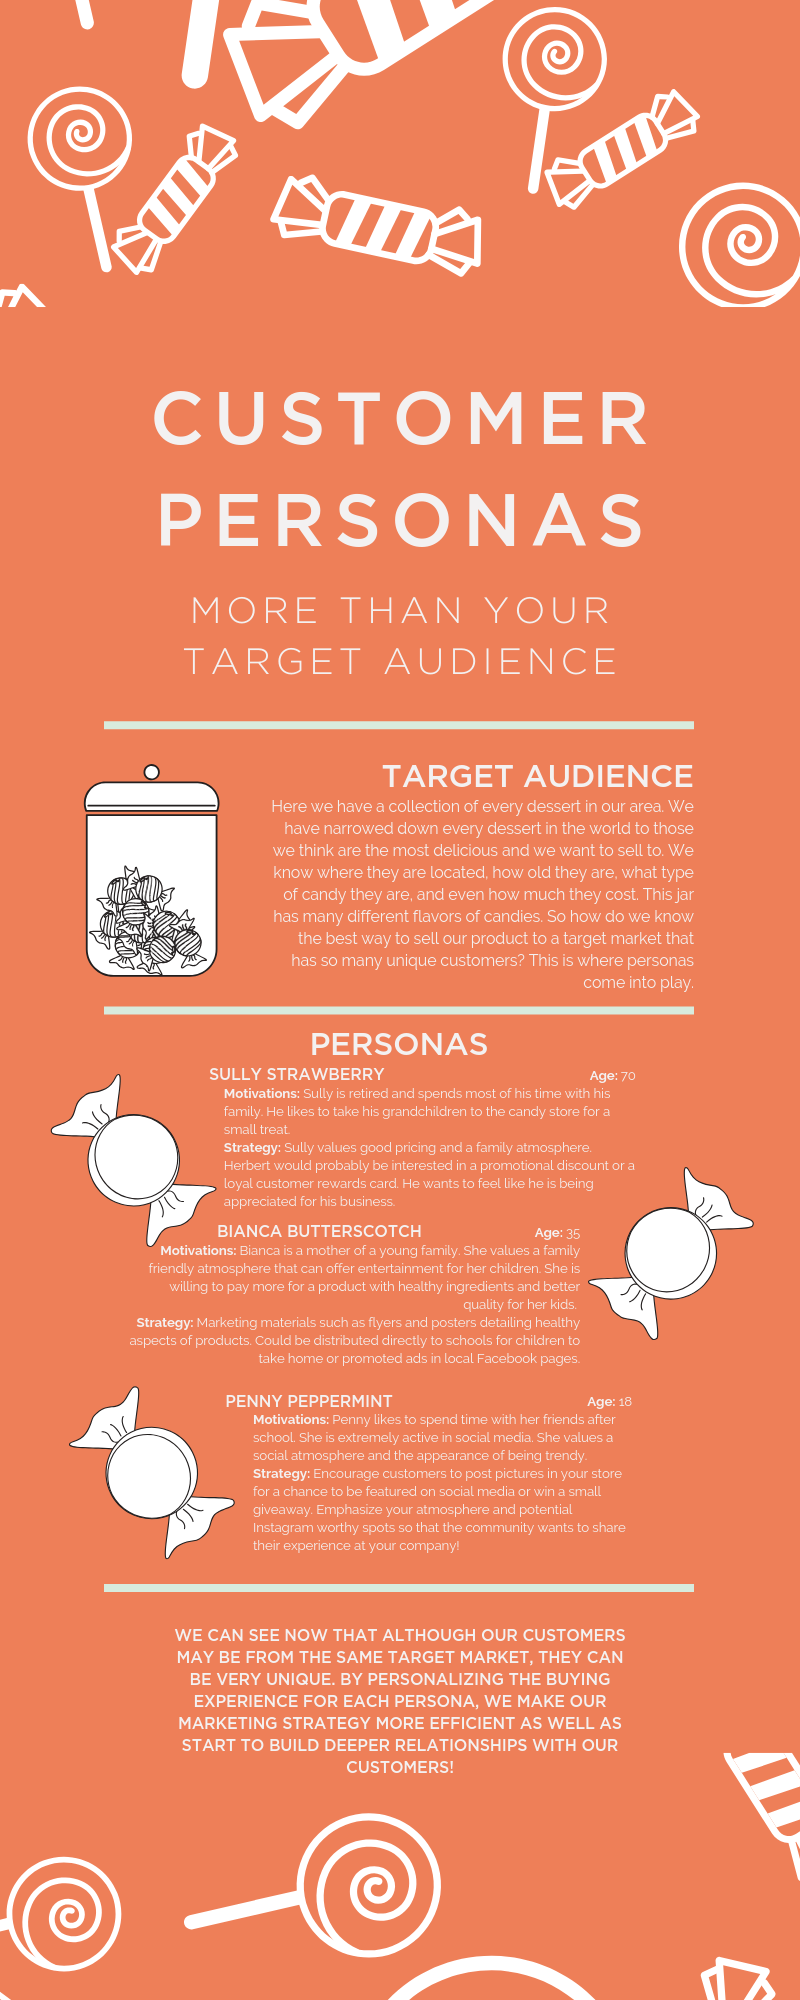 Brand Persona Infographic 6_5 (1).png